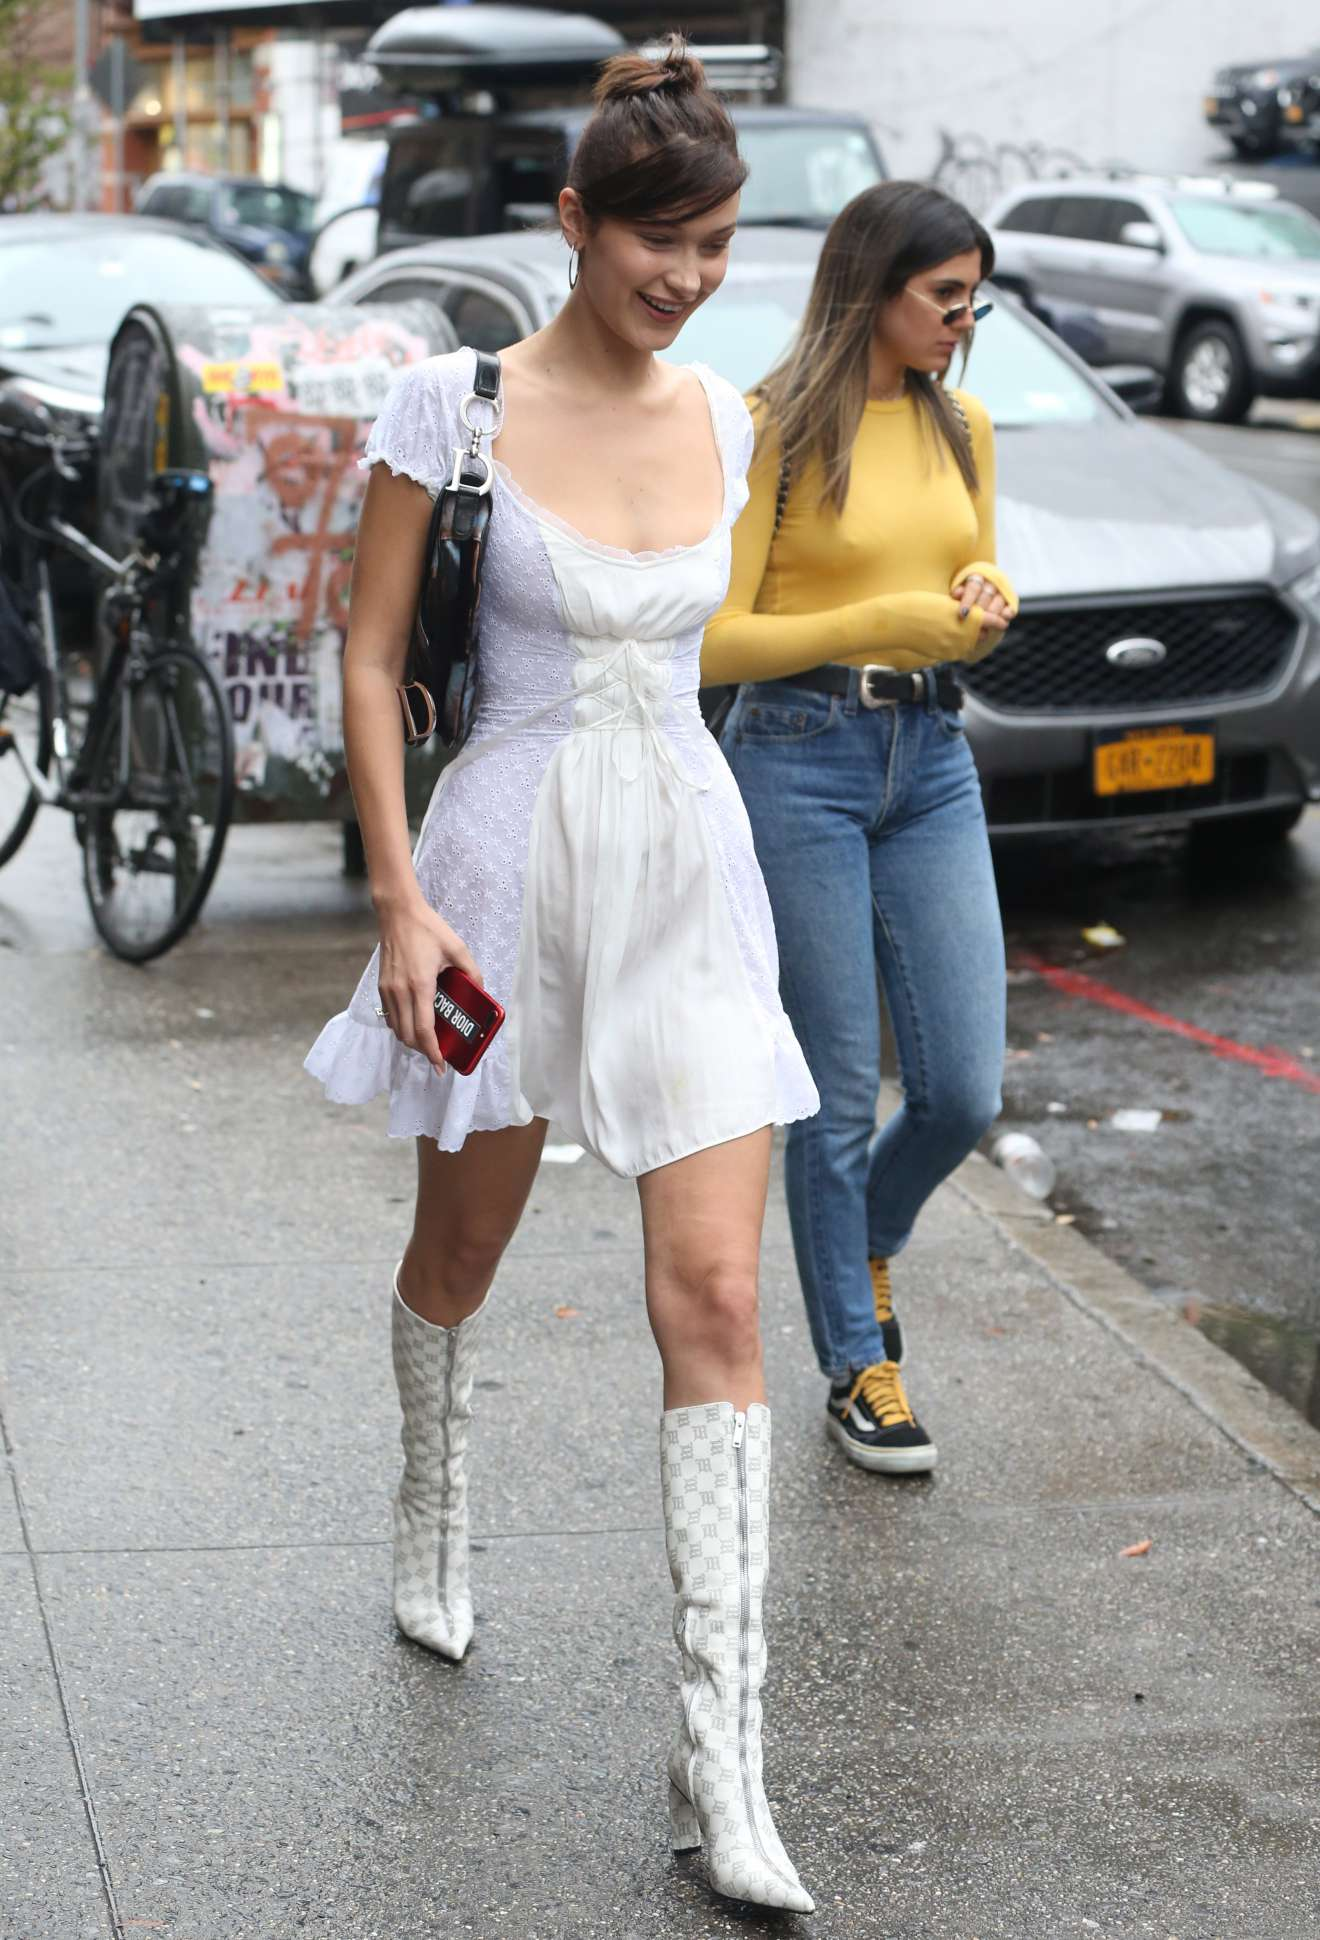 Bella Hadid: In White Summer Dress out in NYC-22 | GotCeleb